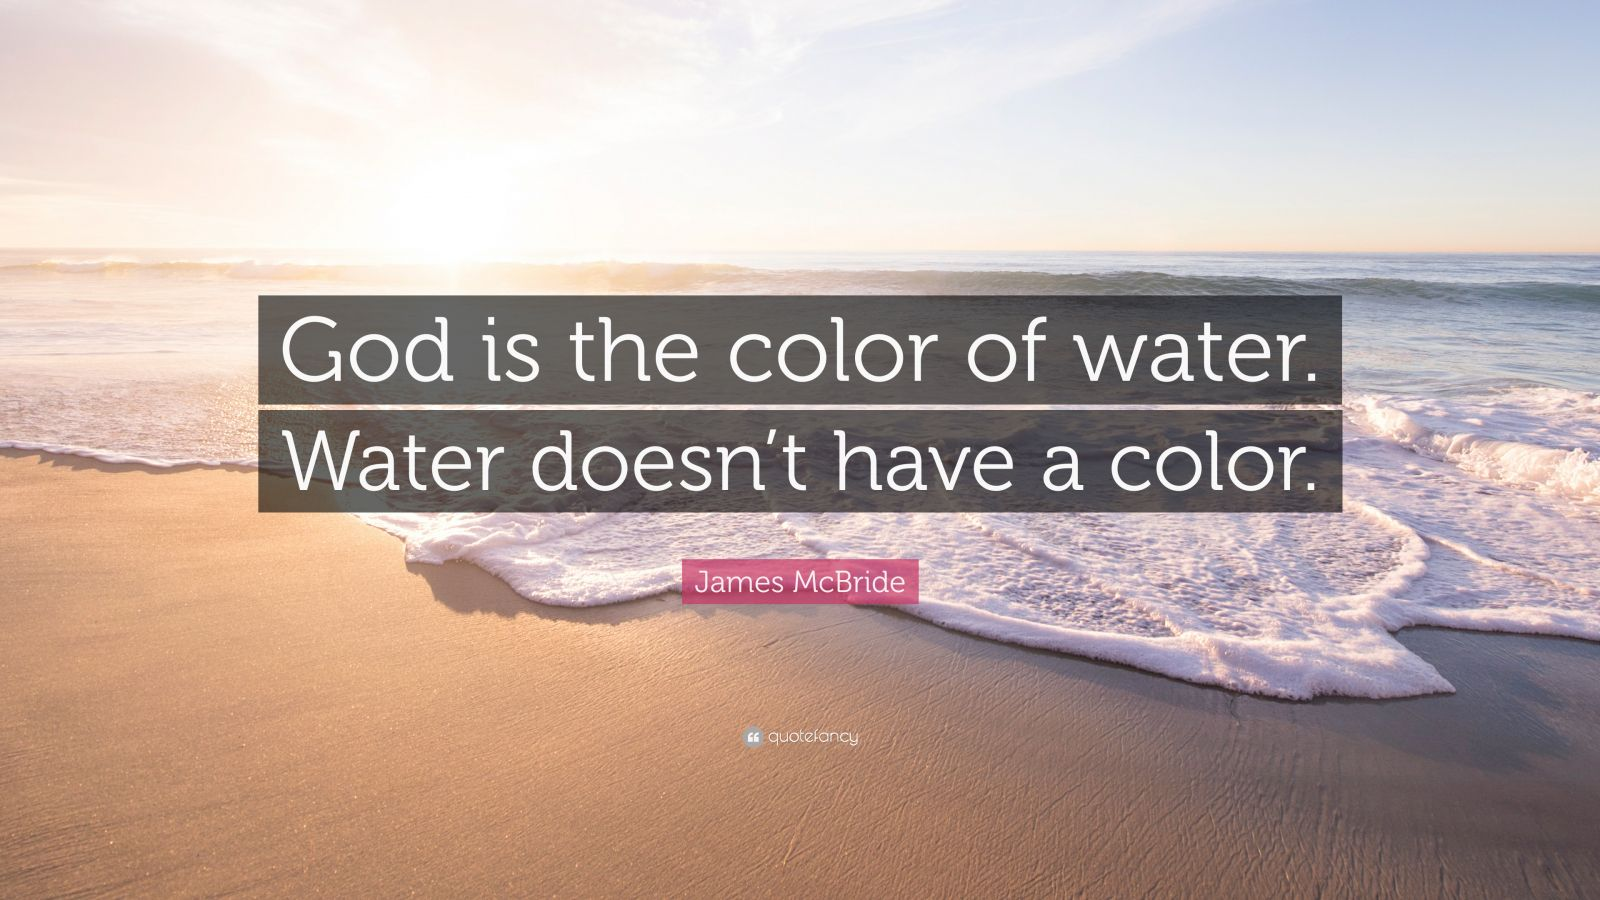 james mcbride the color of water James mcbride is an award winning writer and musician he has been a staff writer for the washington post,people magazine and the boston globe he is best known for his memoir, best selling color of water.